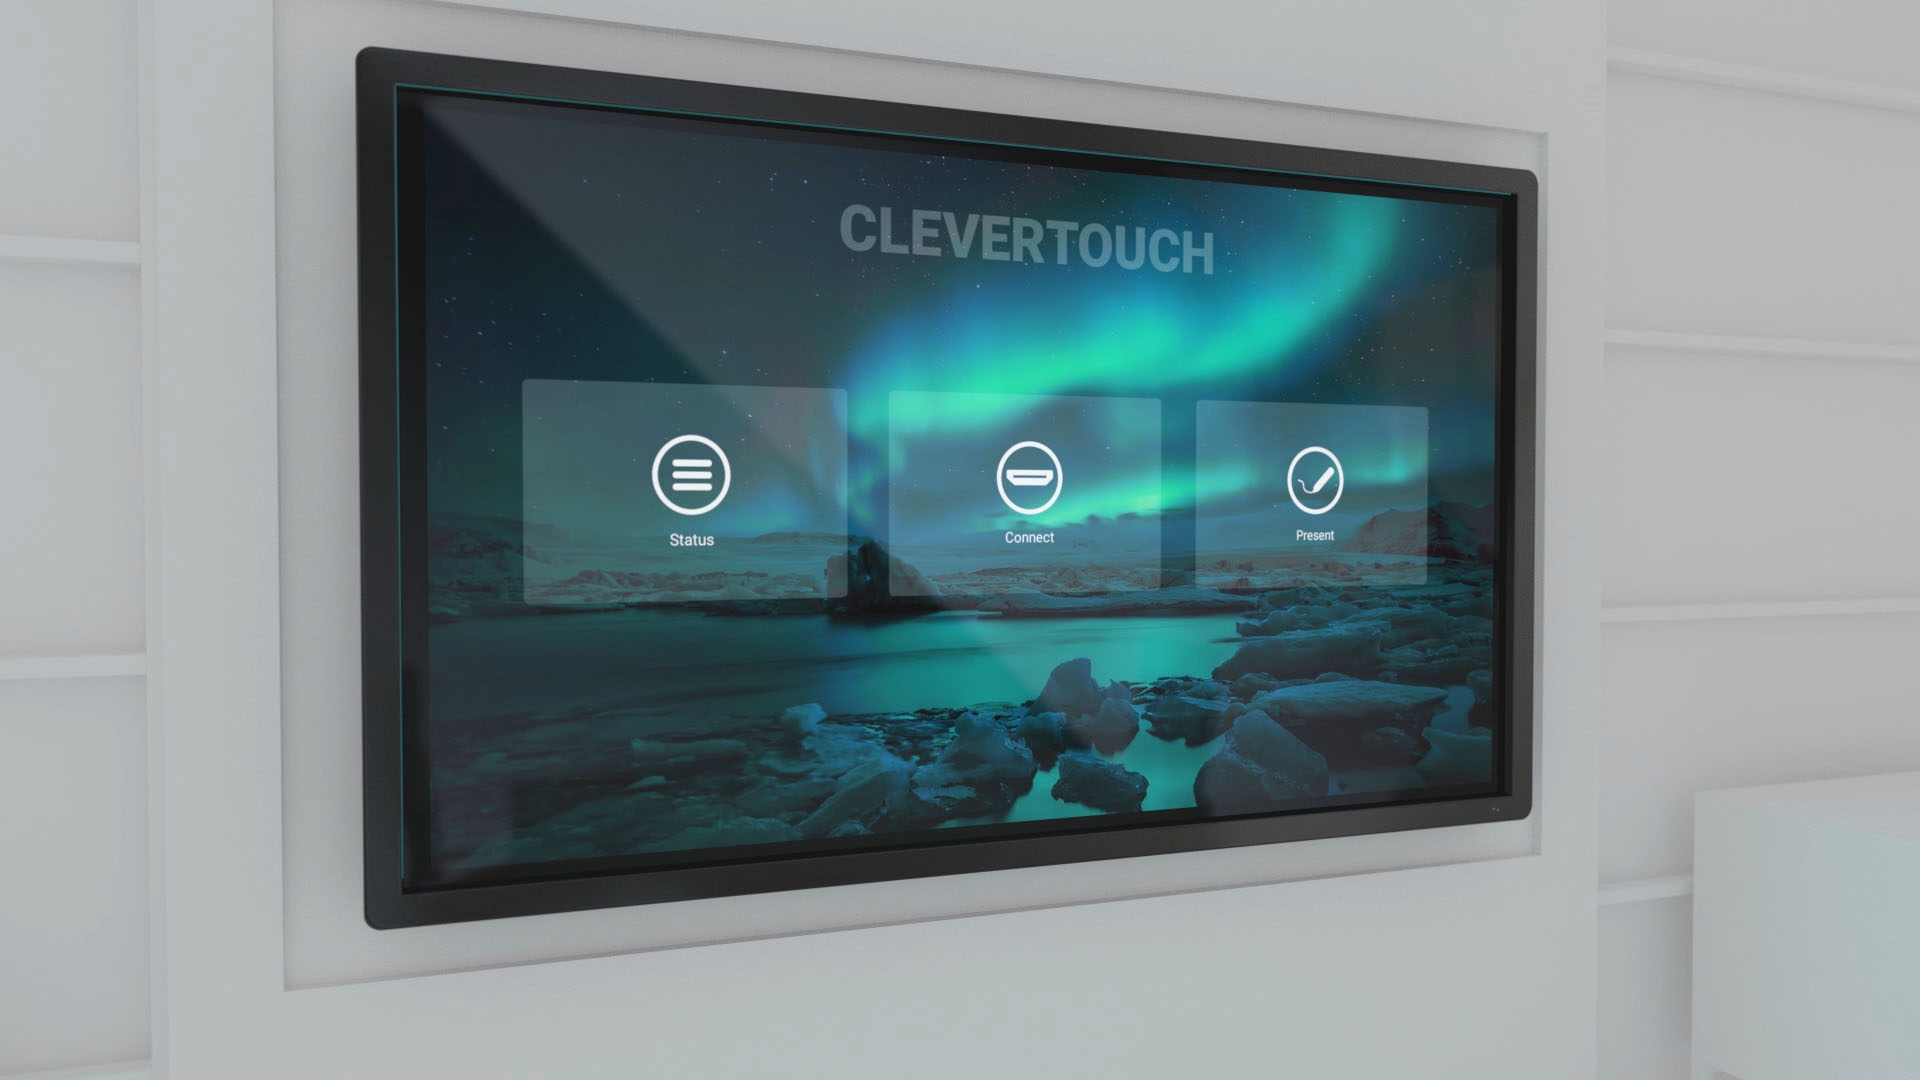 Clevertouch_screem shots_#_0001_Layer 2